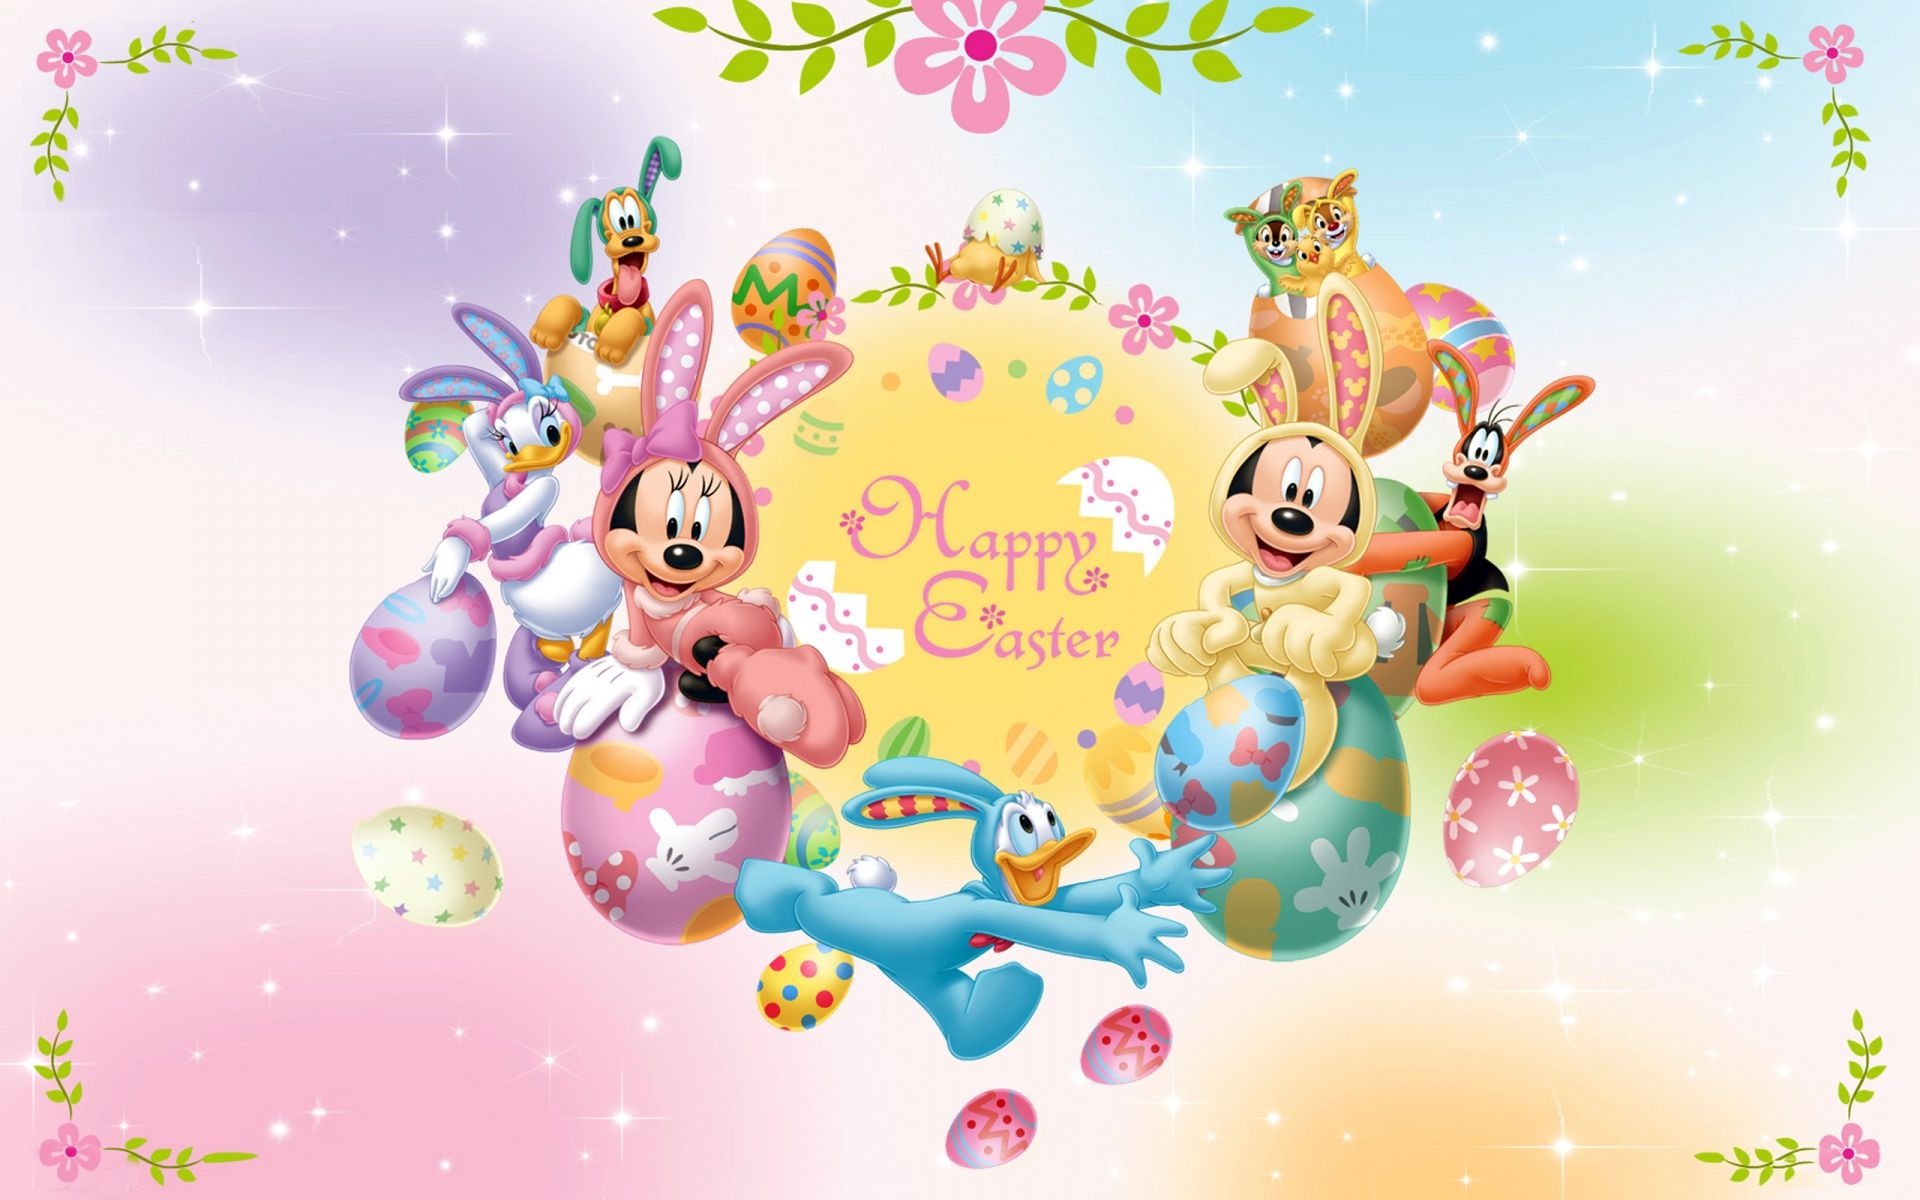 Attirant Happy Easter Mickey Mouse Cartoon Easter 2013 U2013 Free HD Wallpapers